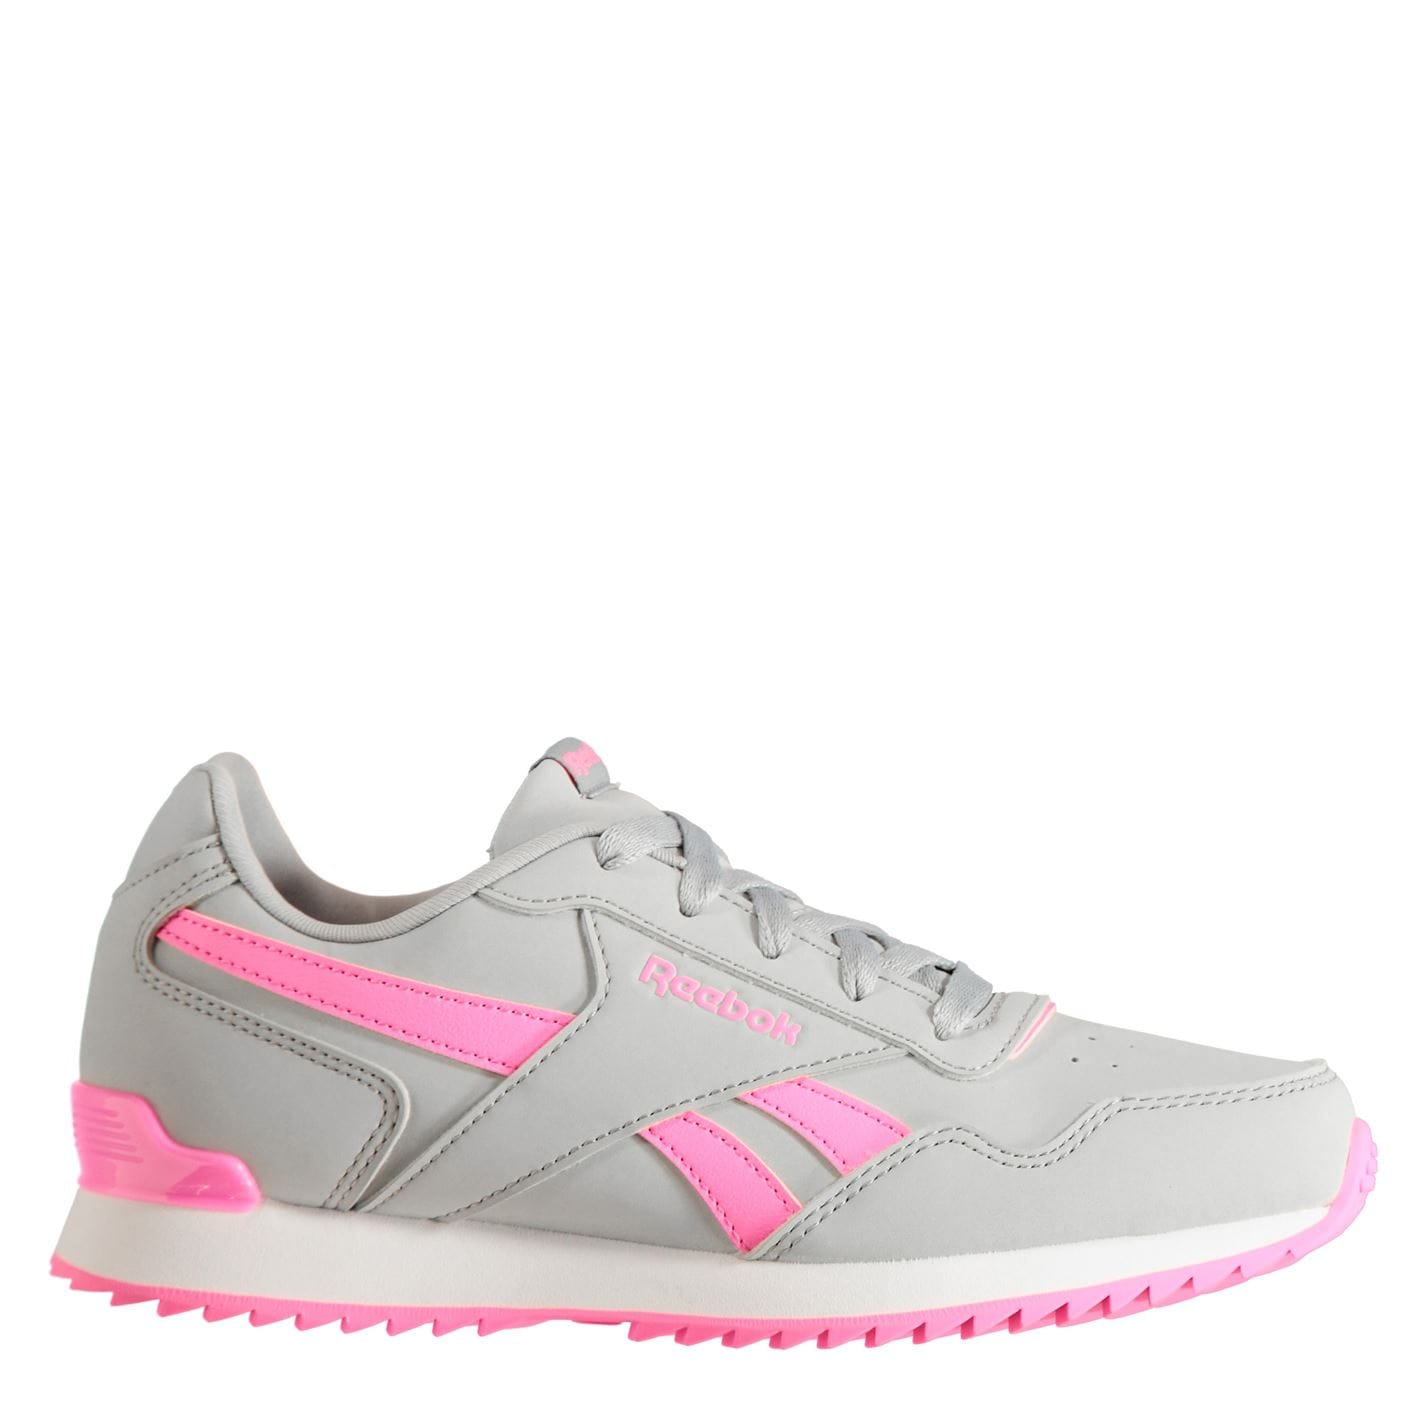 Reebok Glide Rip Clip Child Girls Trainers Grey/Pink